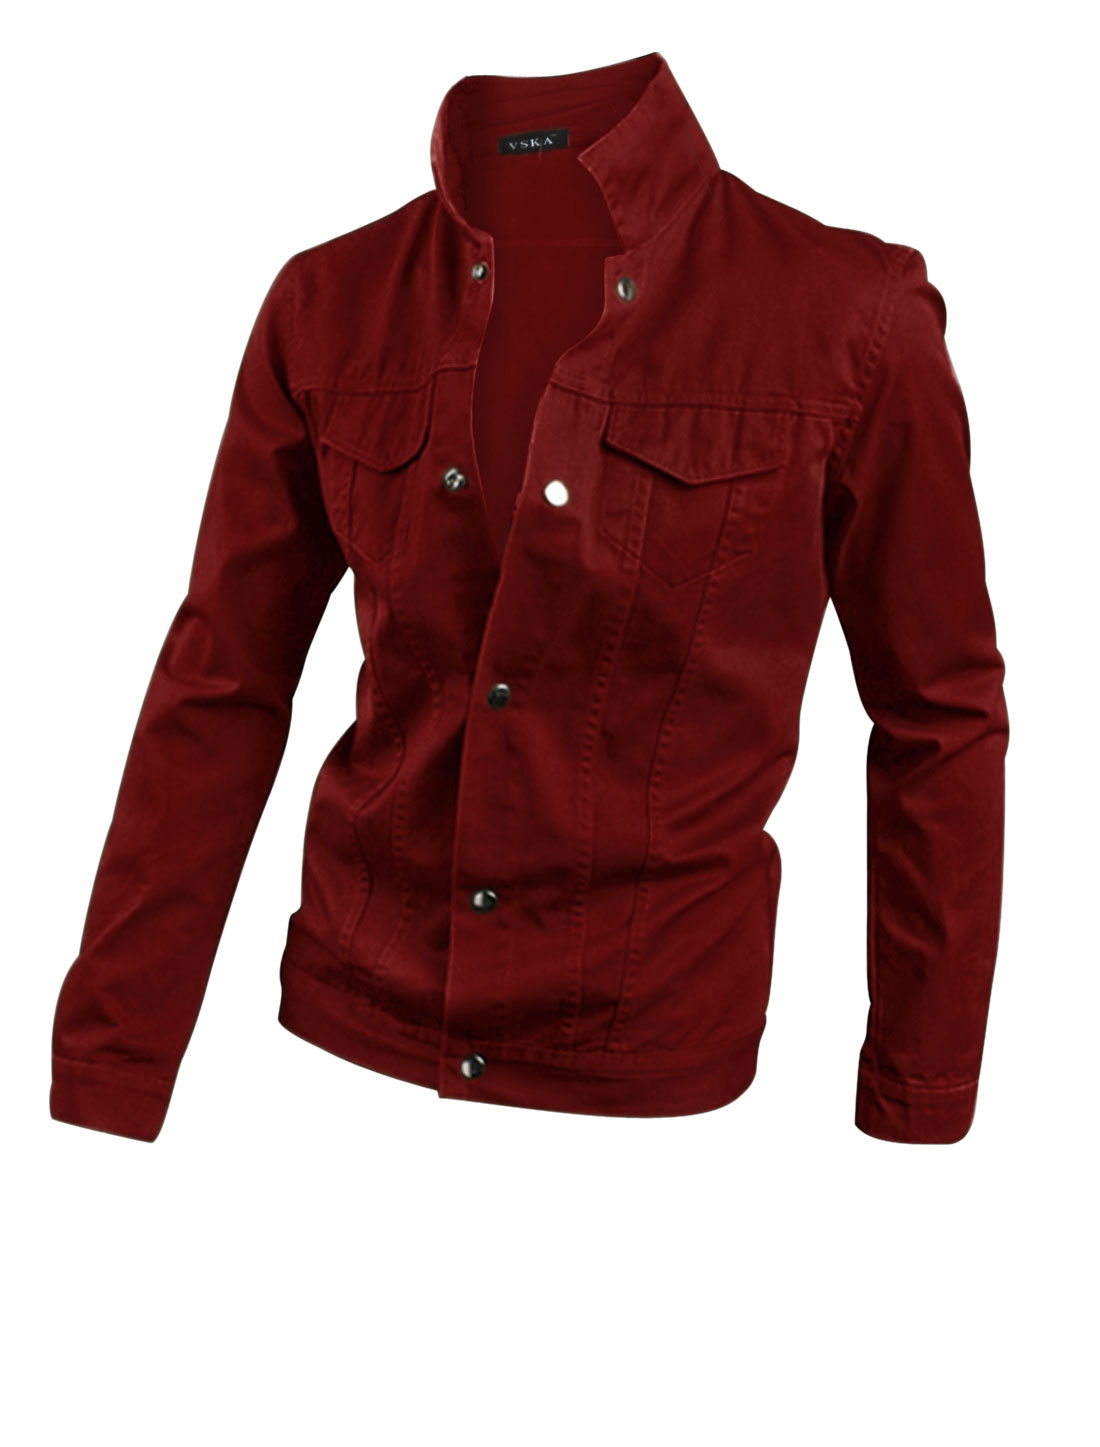 Man Long Sleeves Convertible Collar Stylish Warm Red Casual Jacket M